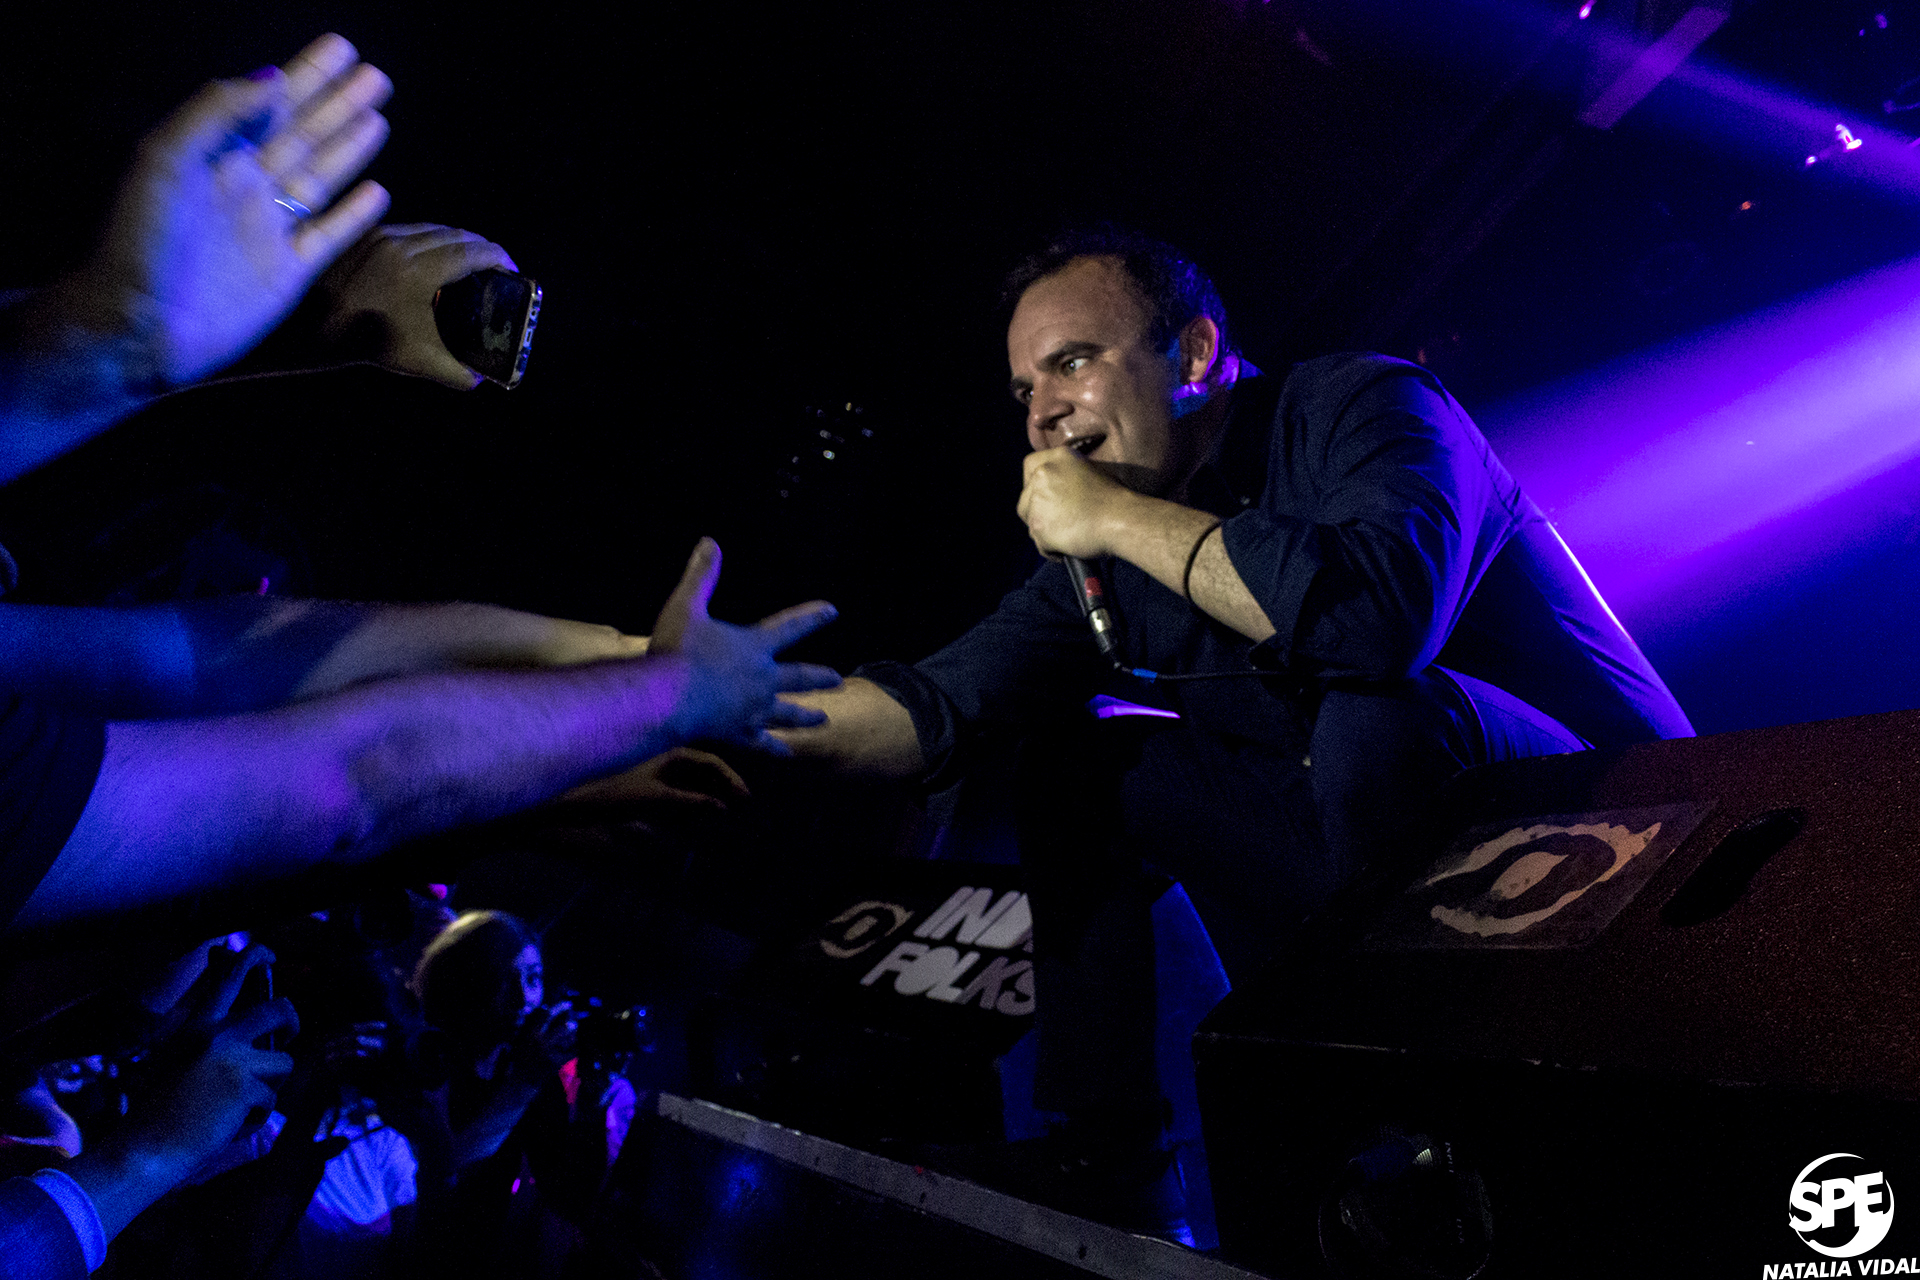 Future-Islands-Walkman-Vol1-Niceto-09-05-18-Natalia-Vidal-Solo-Para-Entendidos_563.jpg